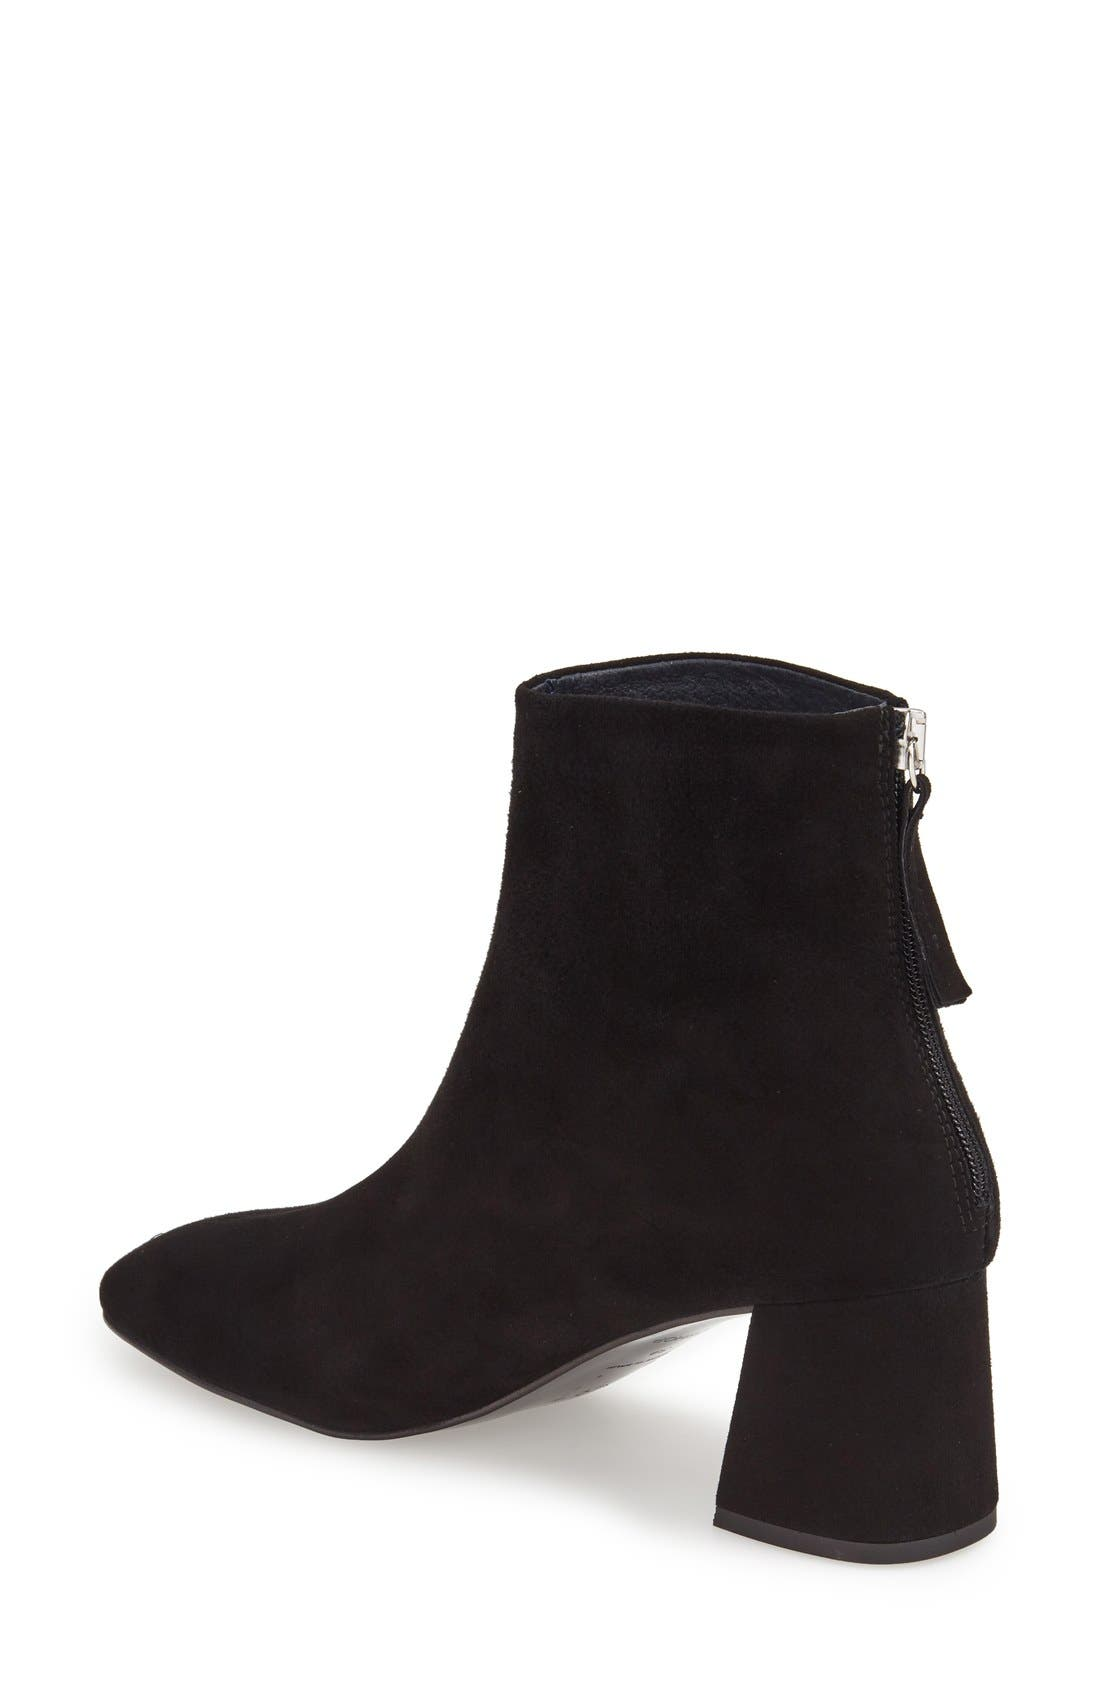 'Maggie' Flared Heel Bootie,                             Alternate thumbnail 2, color,                             001